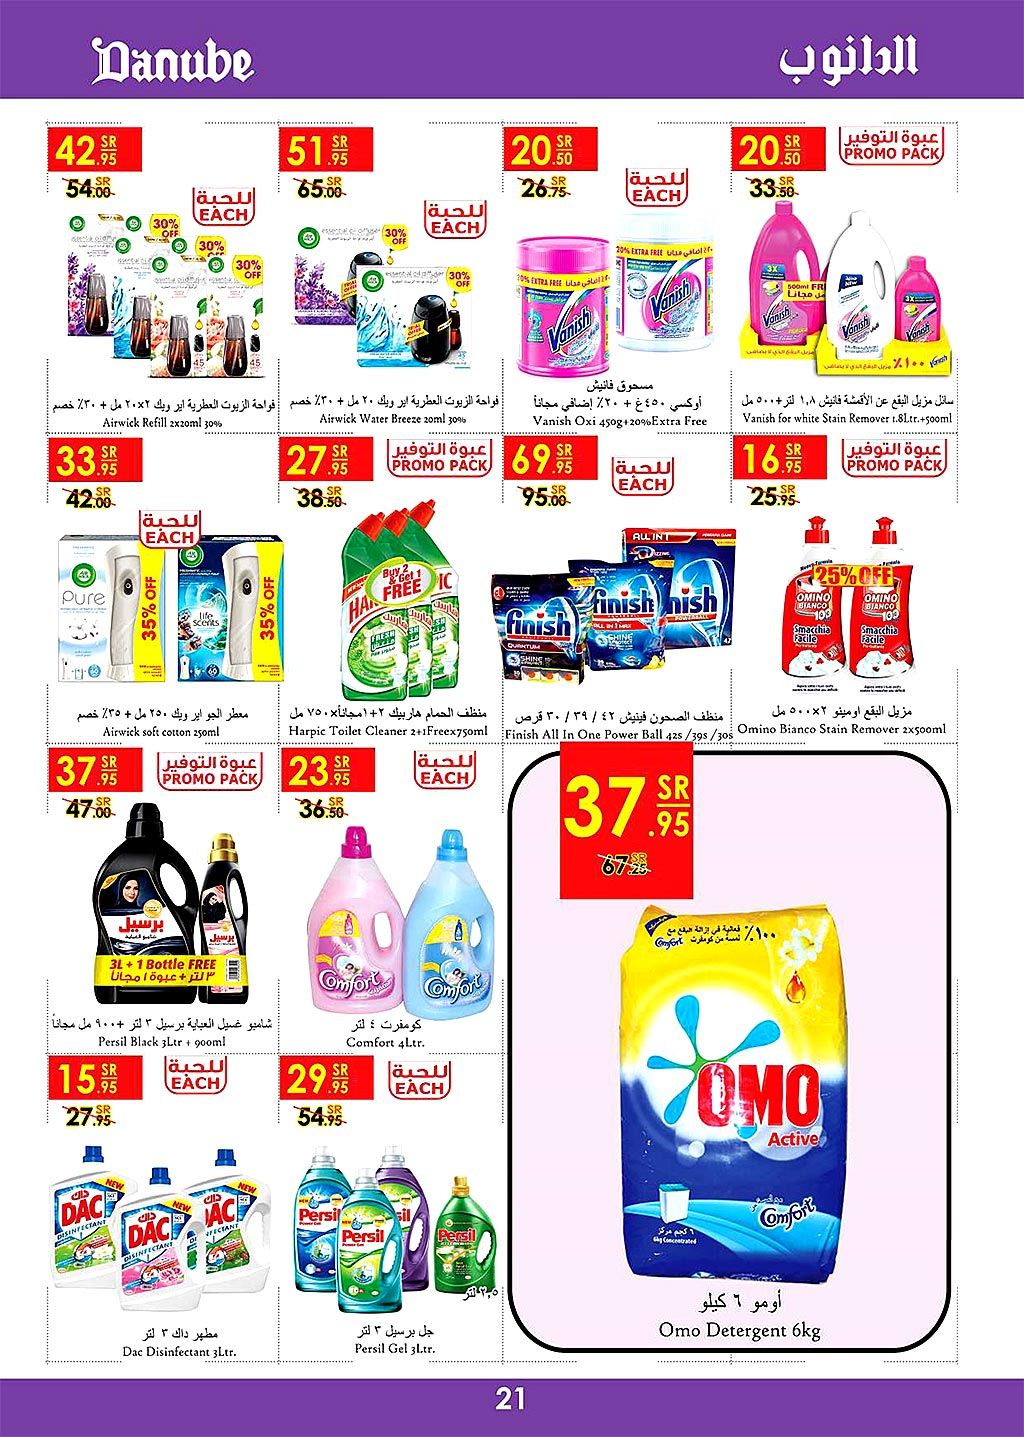 danube offers from 12june to 18june 2019 page number 21 عروض الدانوب من 12 يونيو حتى 18 يونيو 2019 صفحة رقم 21